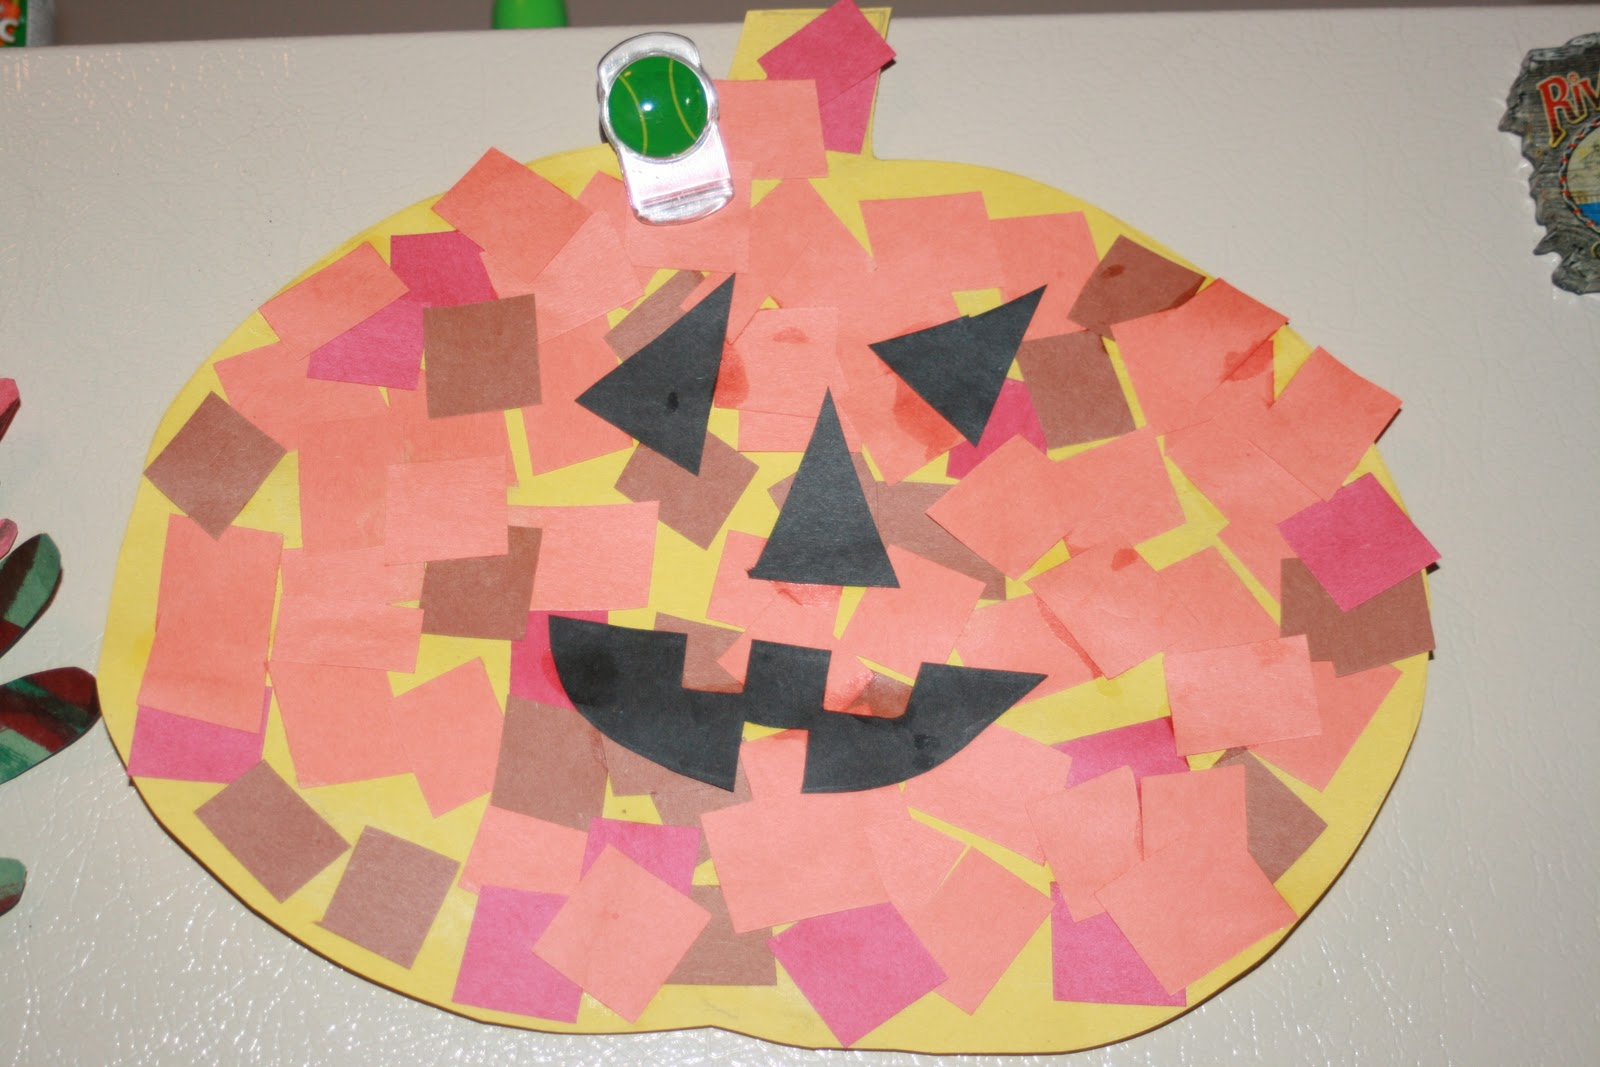 Halloween crafts with construction paper paper crafts for Easy crafts for kids with construction paper